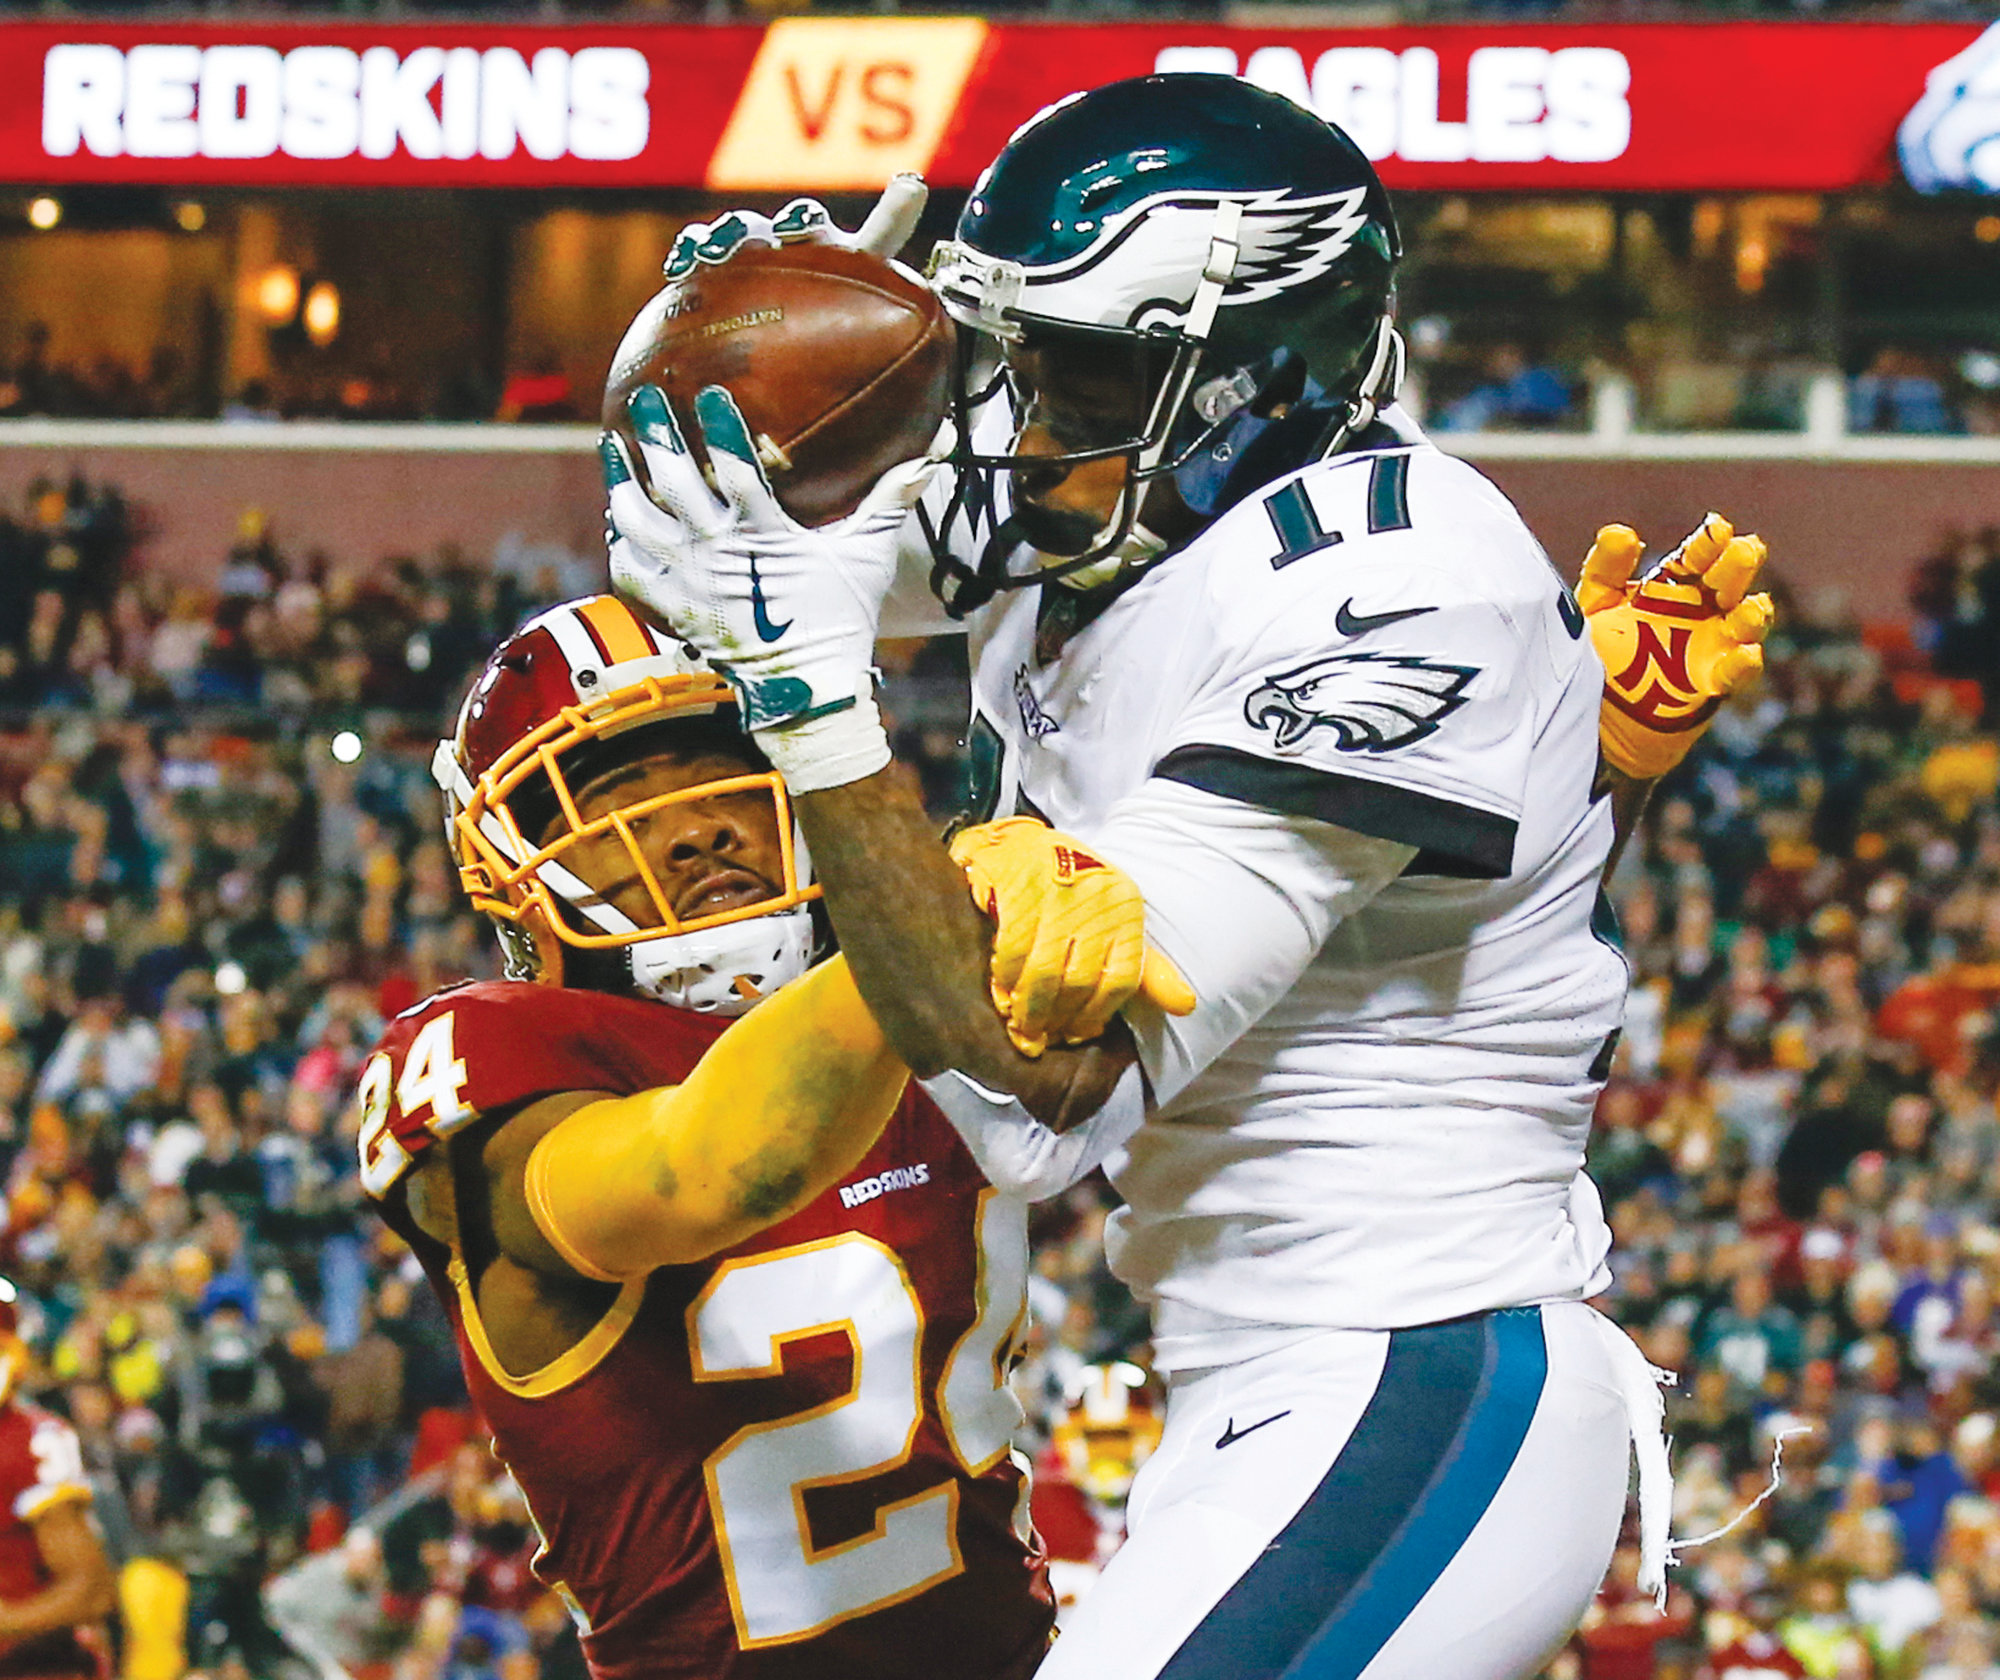 Philadelphia Eagles wide receiver Alshon Jeffery (17) pulls in a touchdown pass under pressure from Washington Redskins cornerback Josh Norman (24) during the first half of the NFL football game between the Washington Redskins and the Philadelphia Eagles, Sunday, Dec. 30, 2018 in Landover, Md. (AP Photo/Alex Brandon)